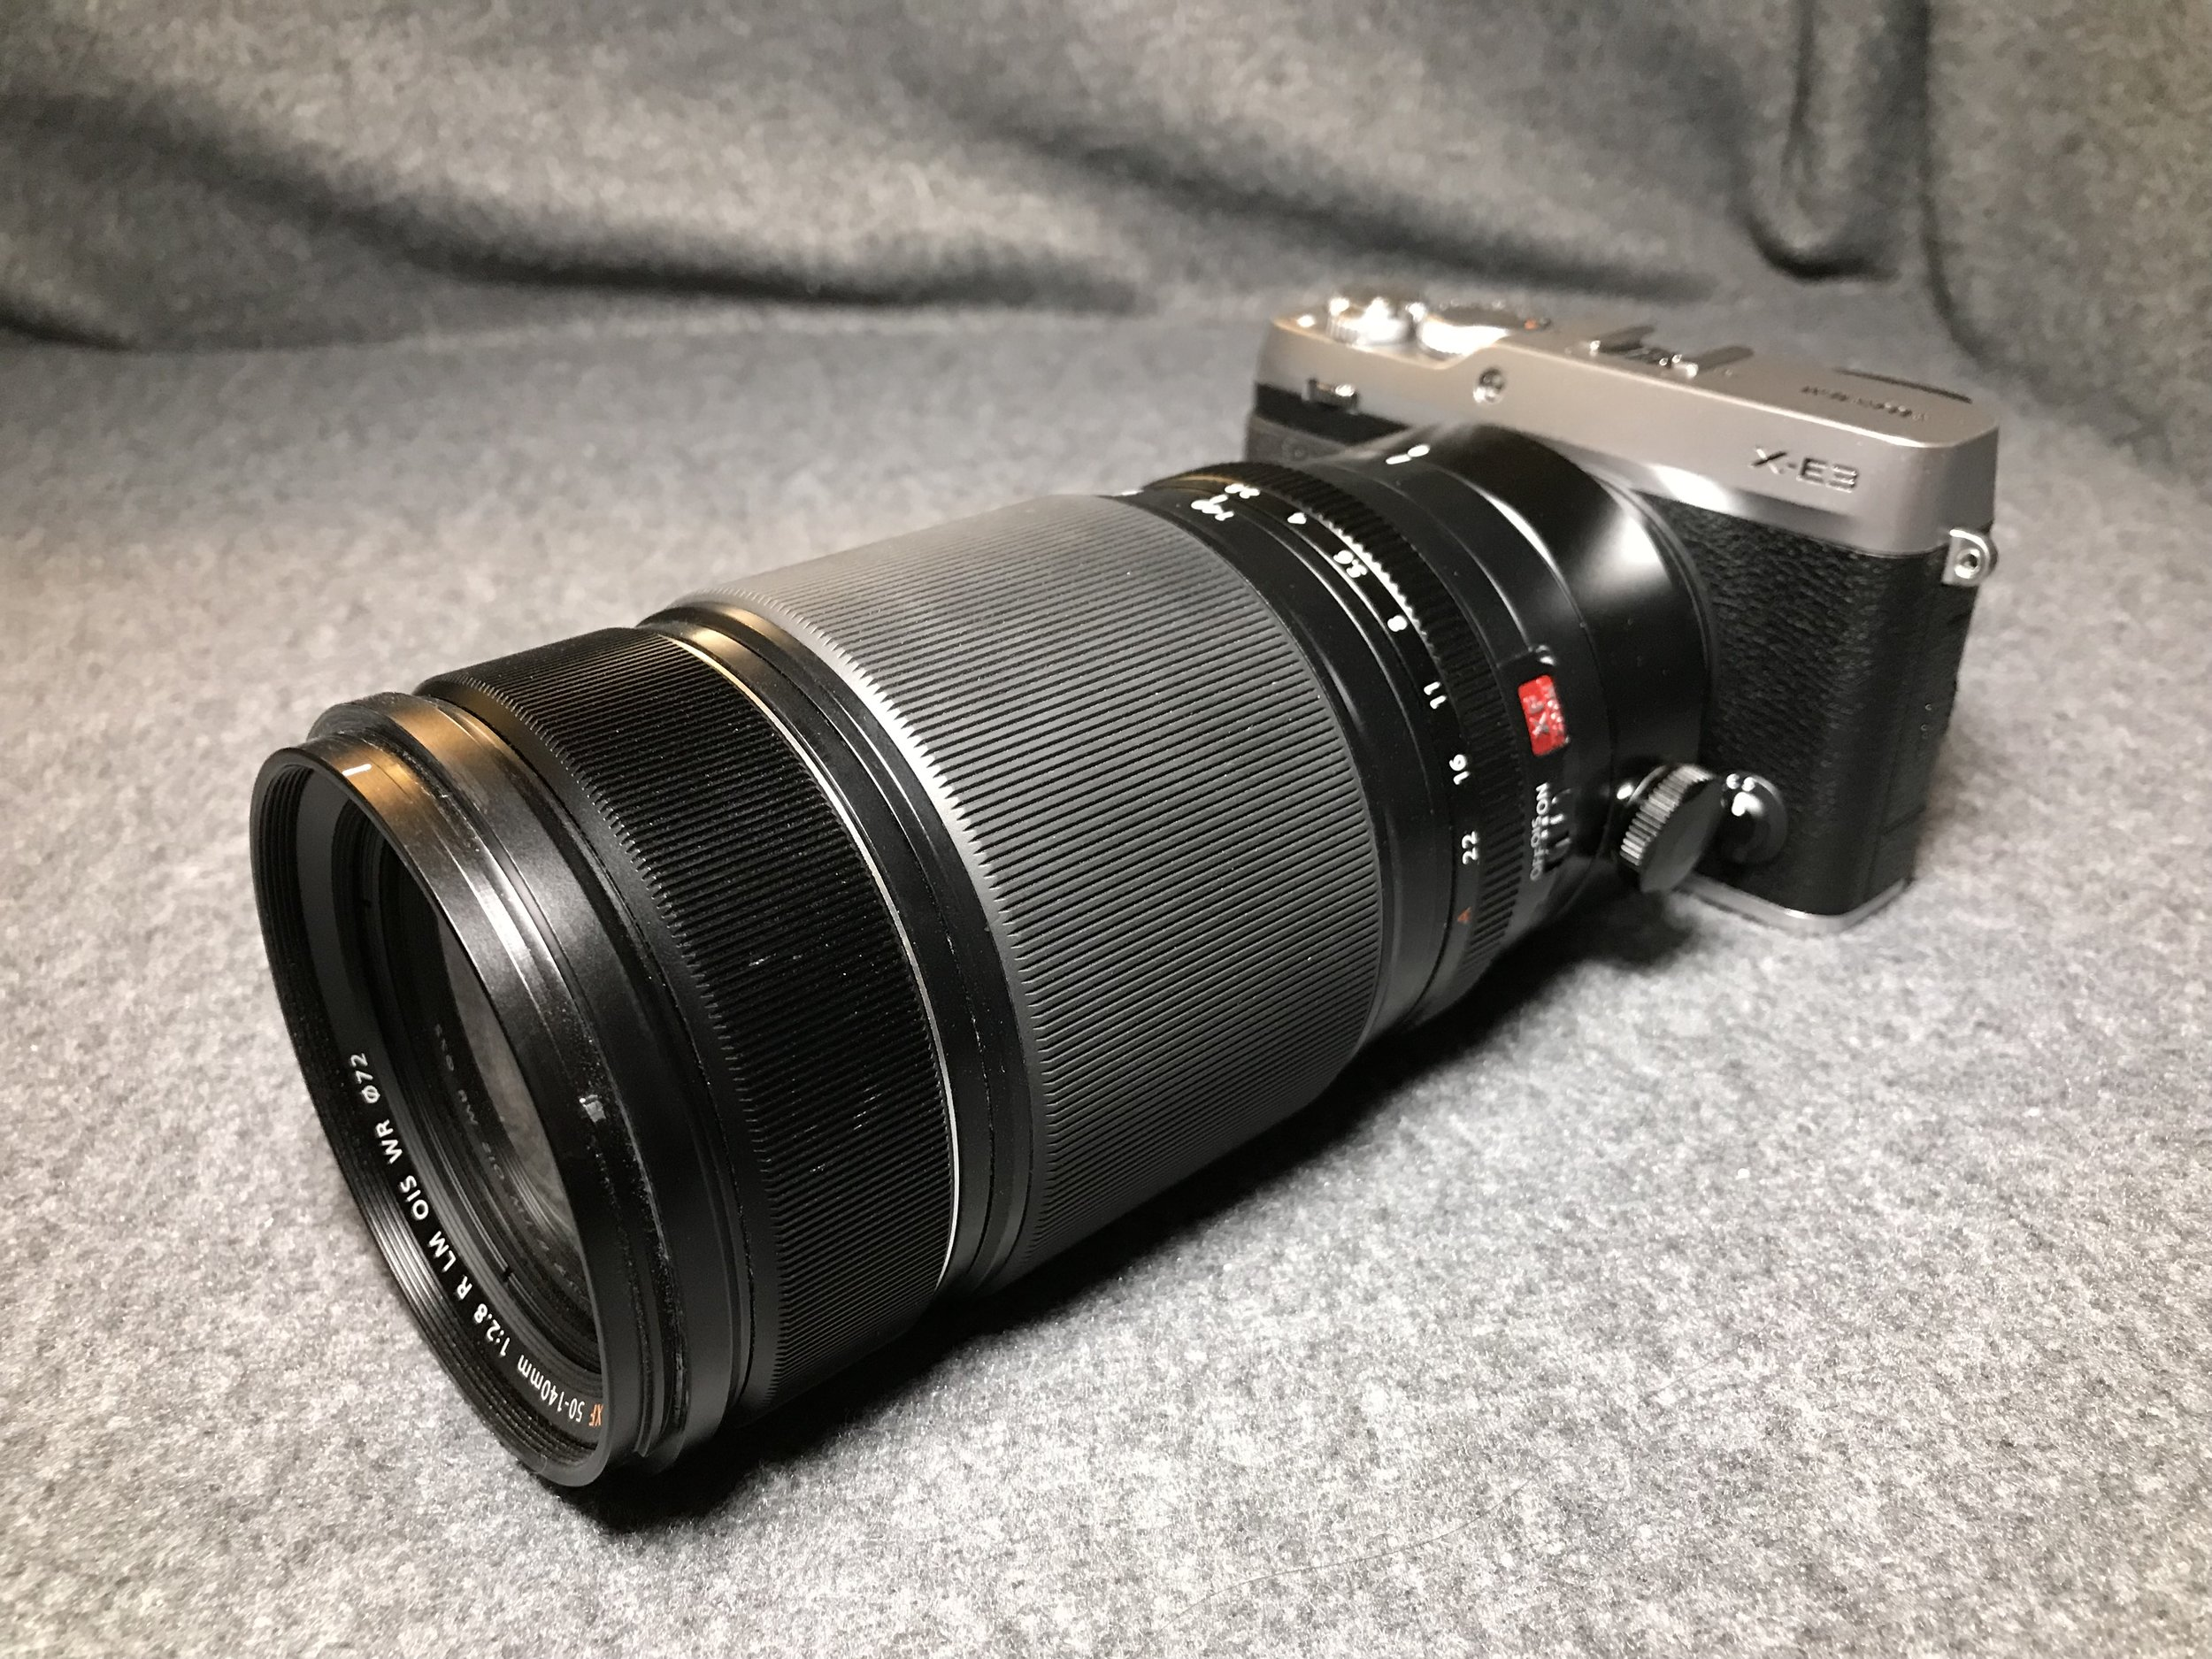 XF50-140mmF2.8 - This might be the beginning of a beautiful friendship...